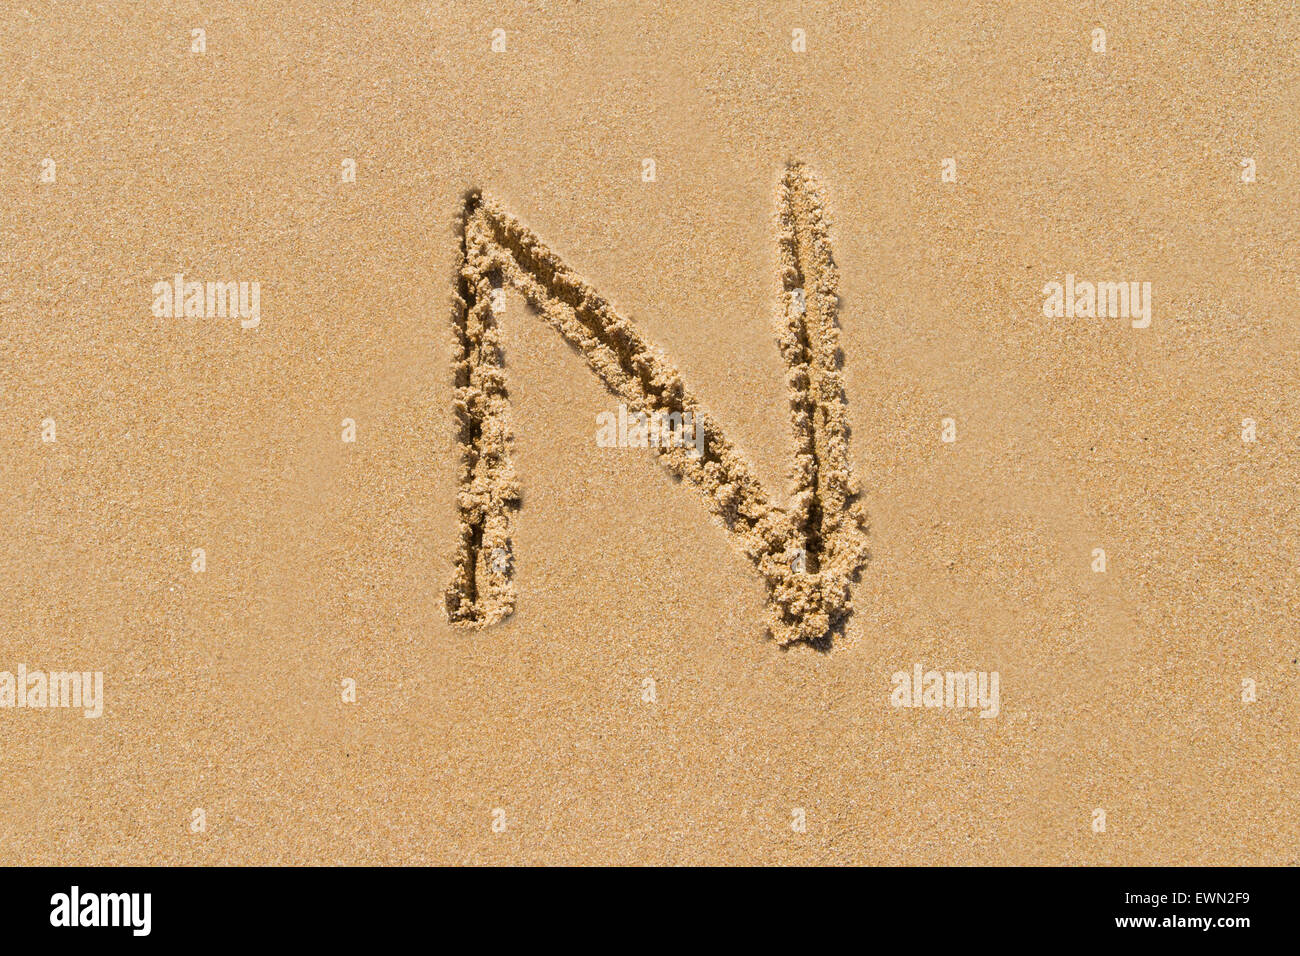 Letter N of the alphabet written on sand with upper case. - Stock Image